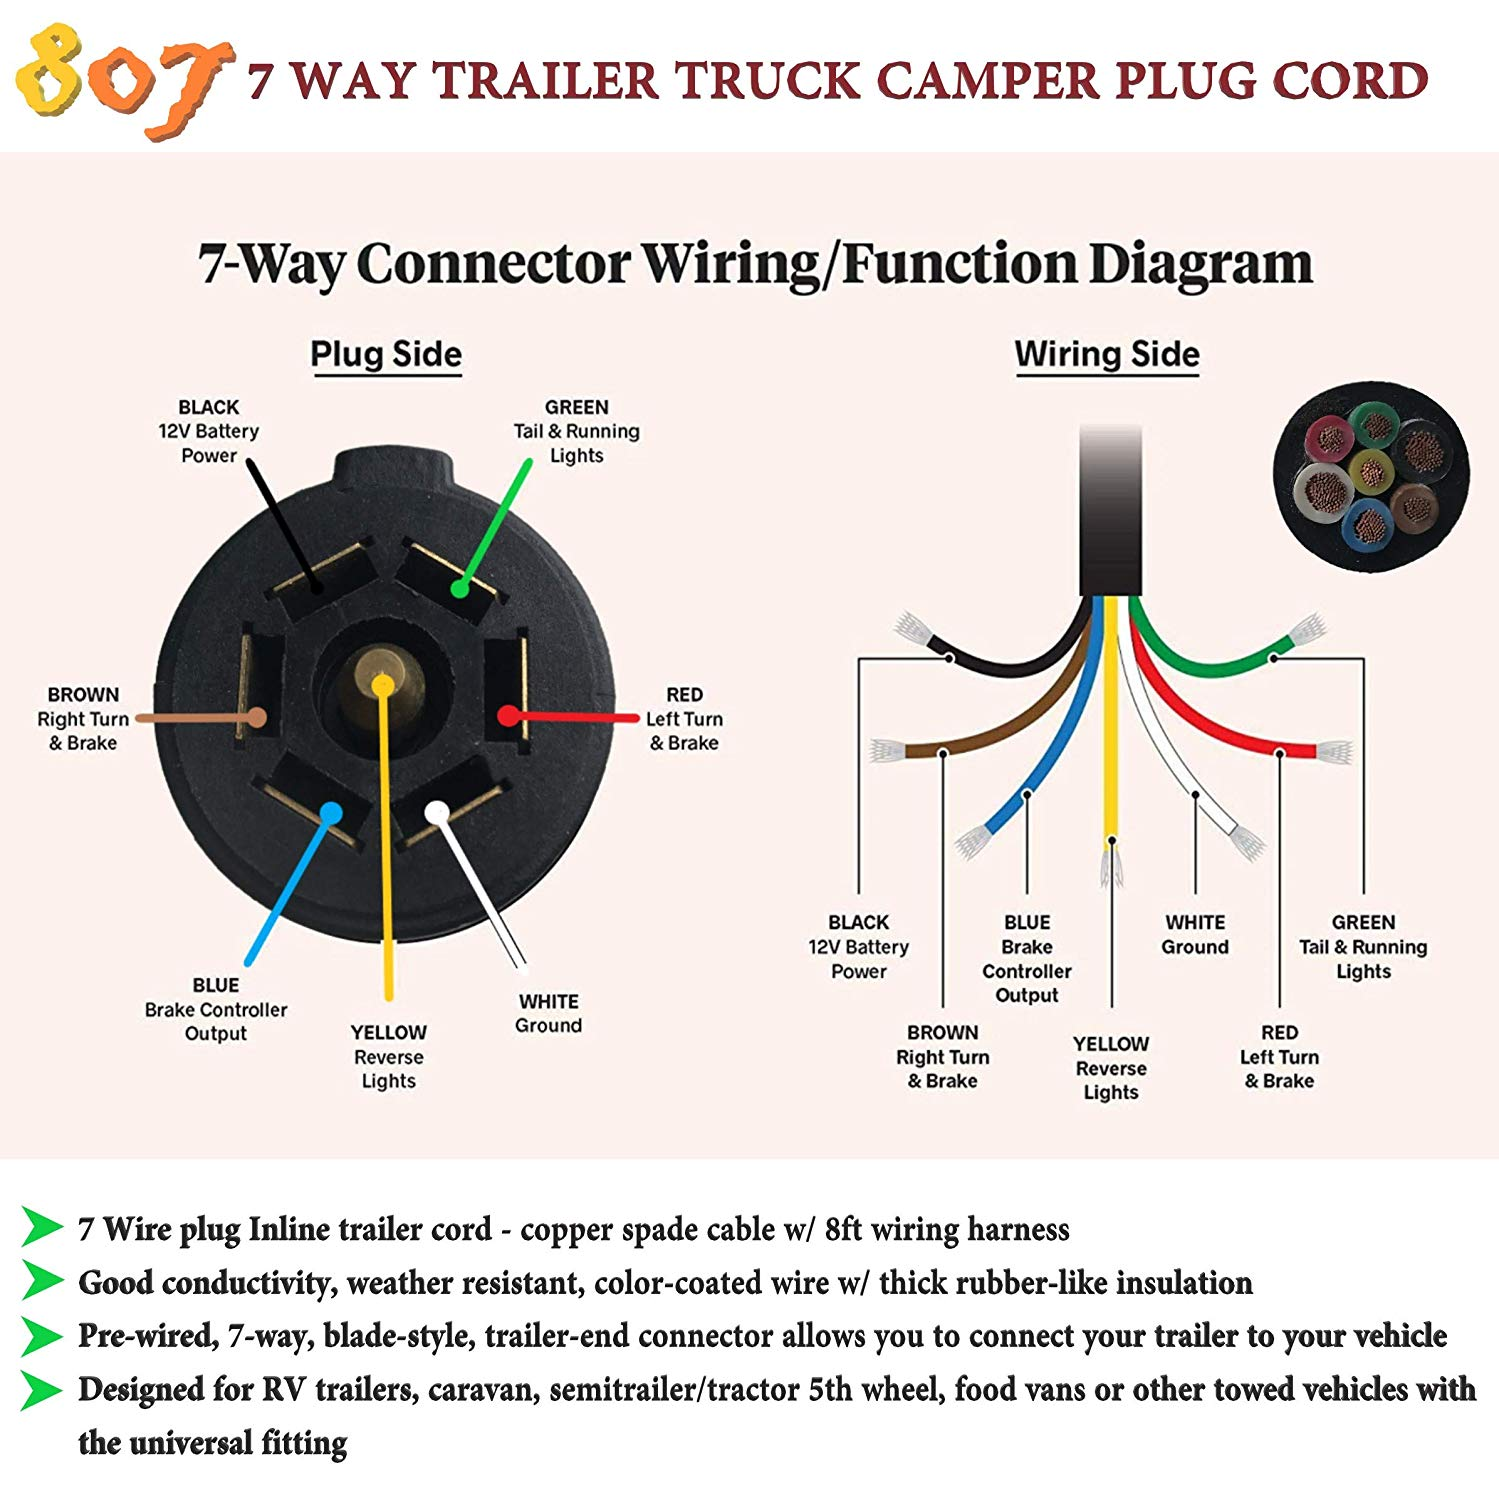 7 Pin Trailer Wiring Harness Diagram - Wiring Diagram